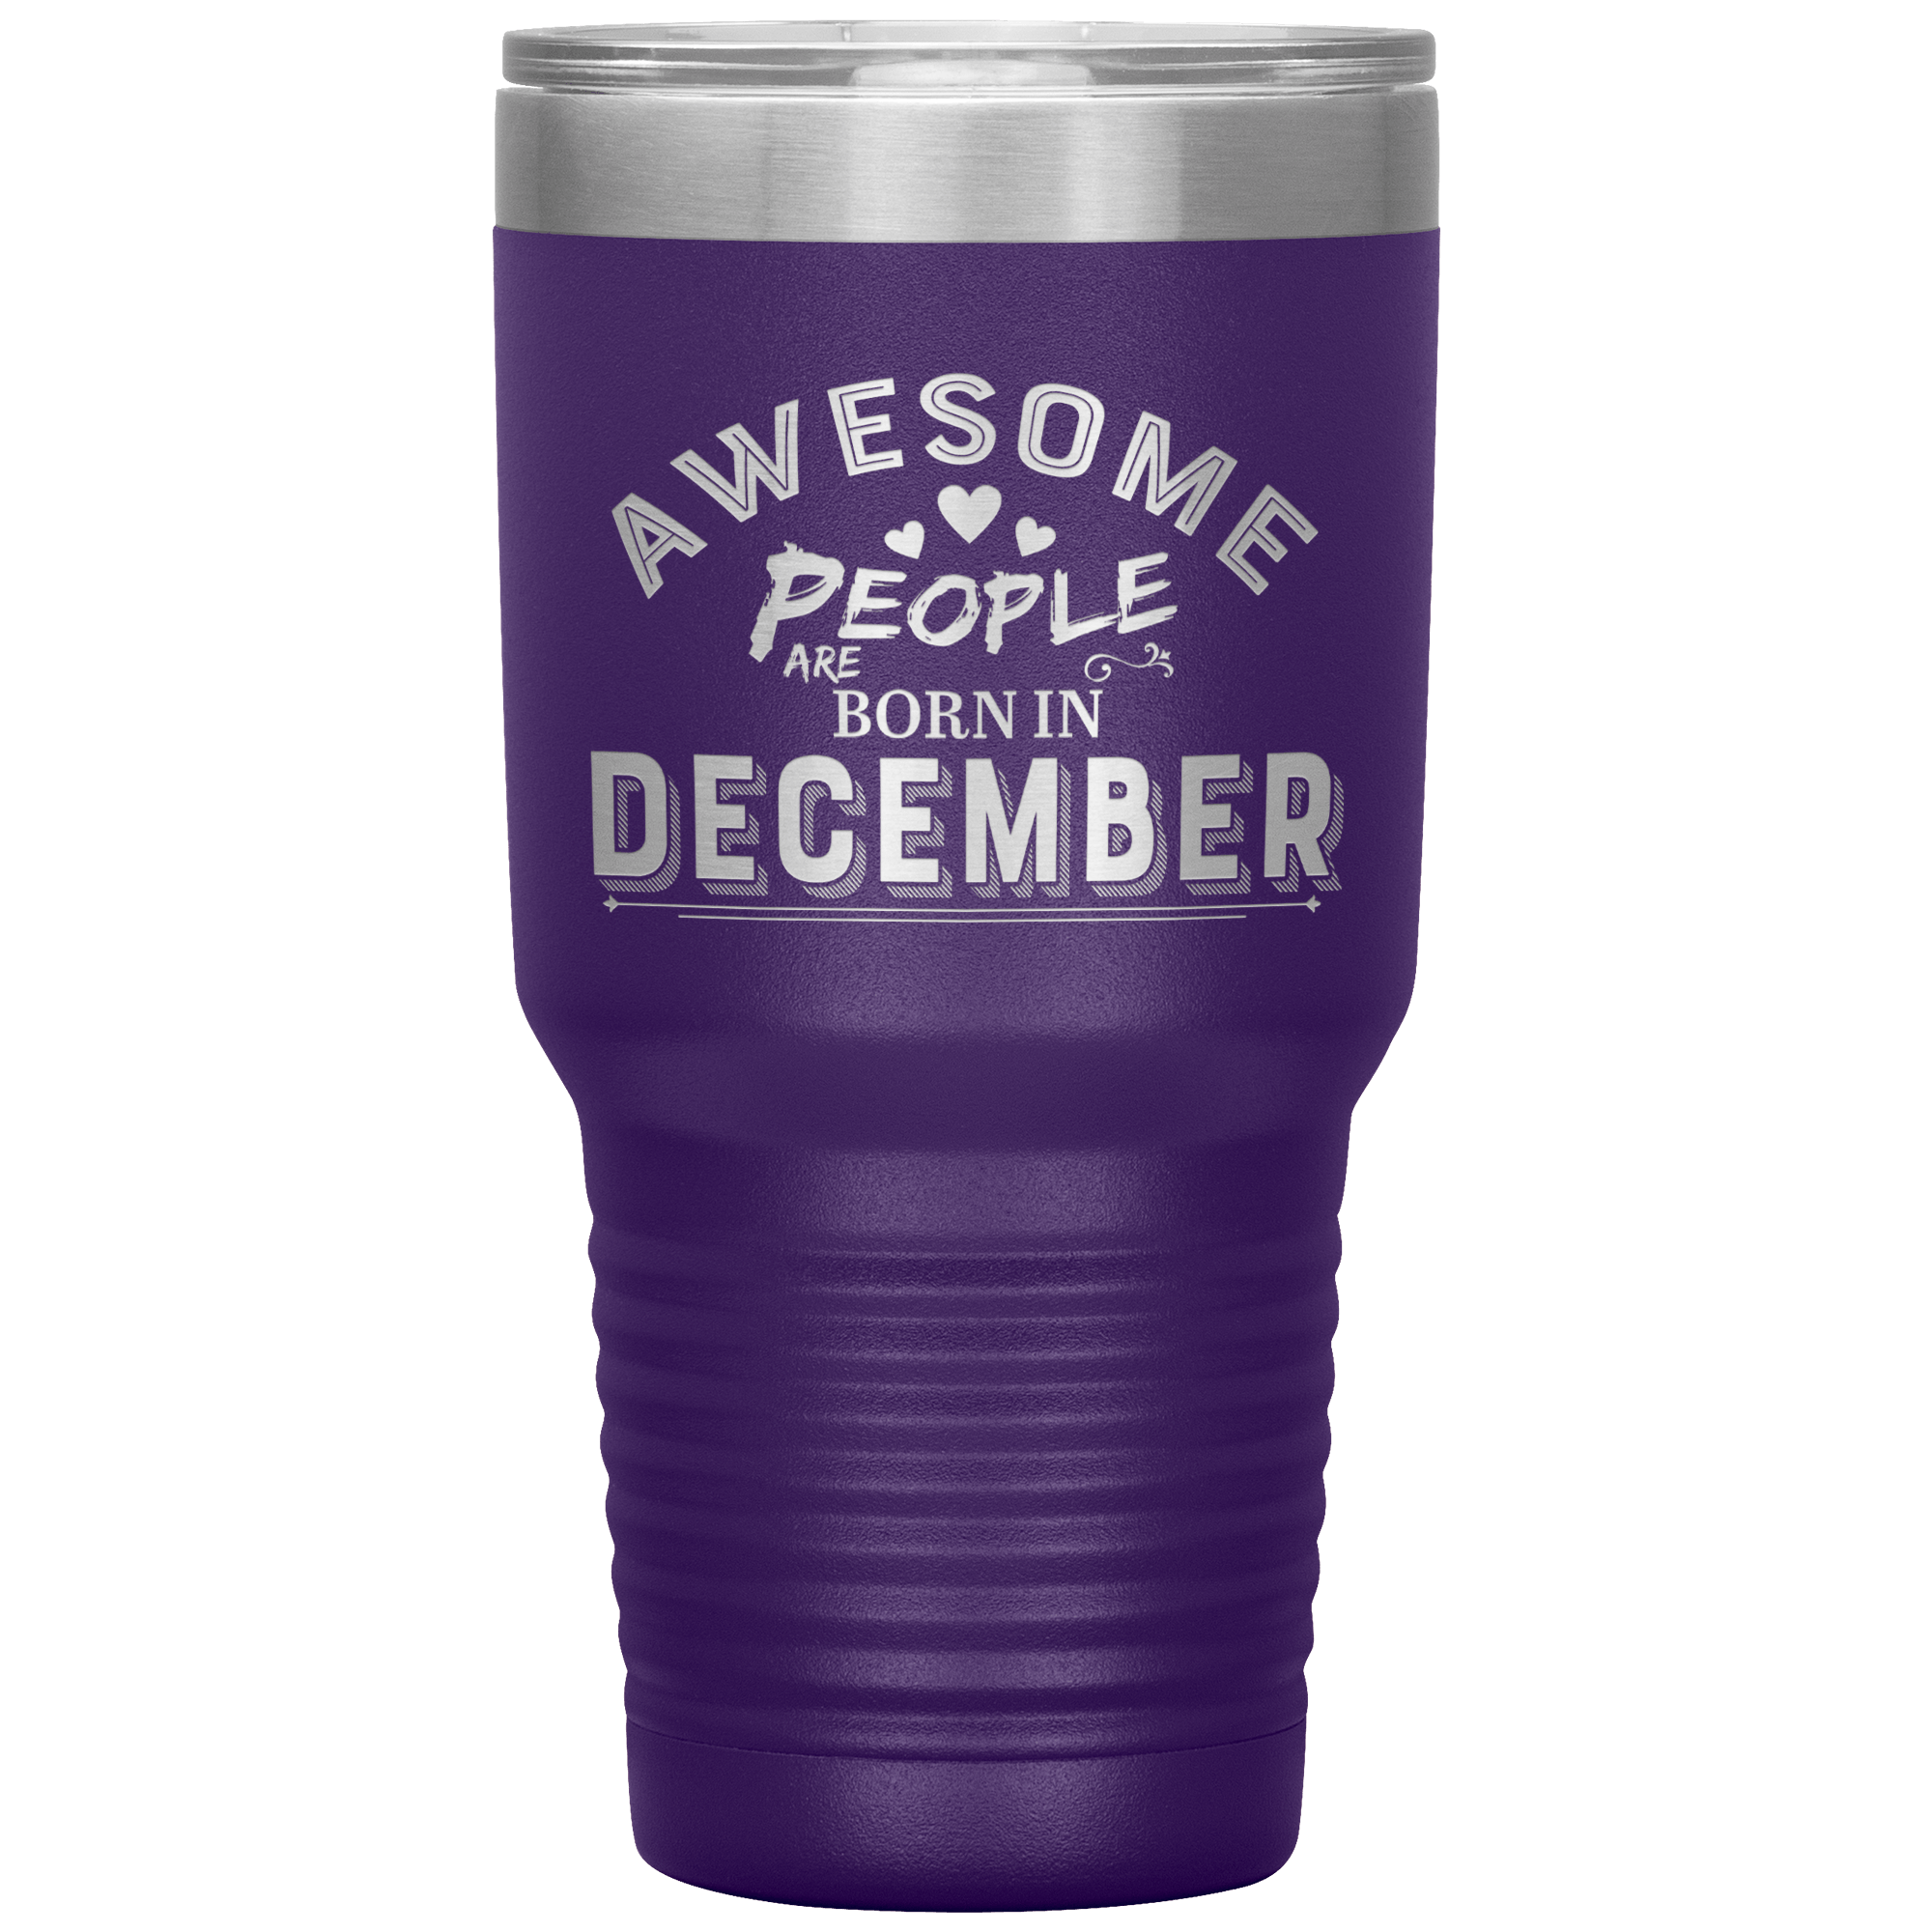 """AWESOME PEOPLE ARE BORN IN DECEMBER""Tumbler. Buy For Family & Friends. Save Shipping. - LA Shirt Company"